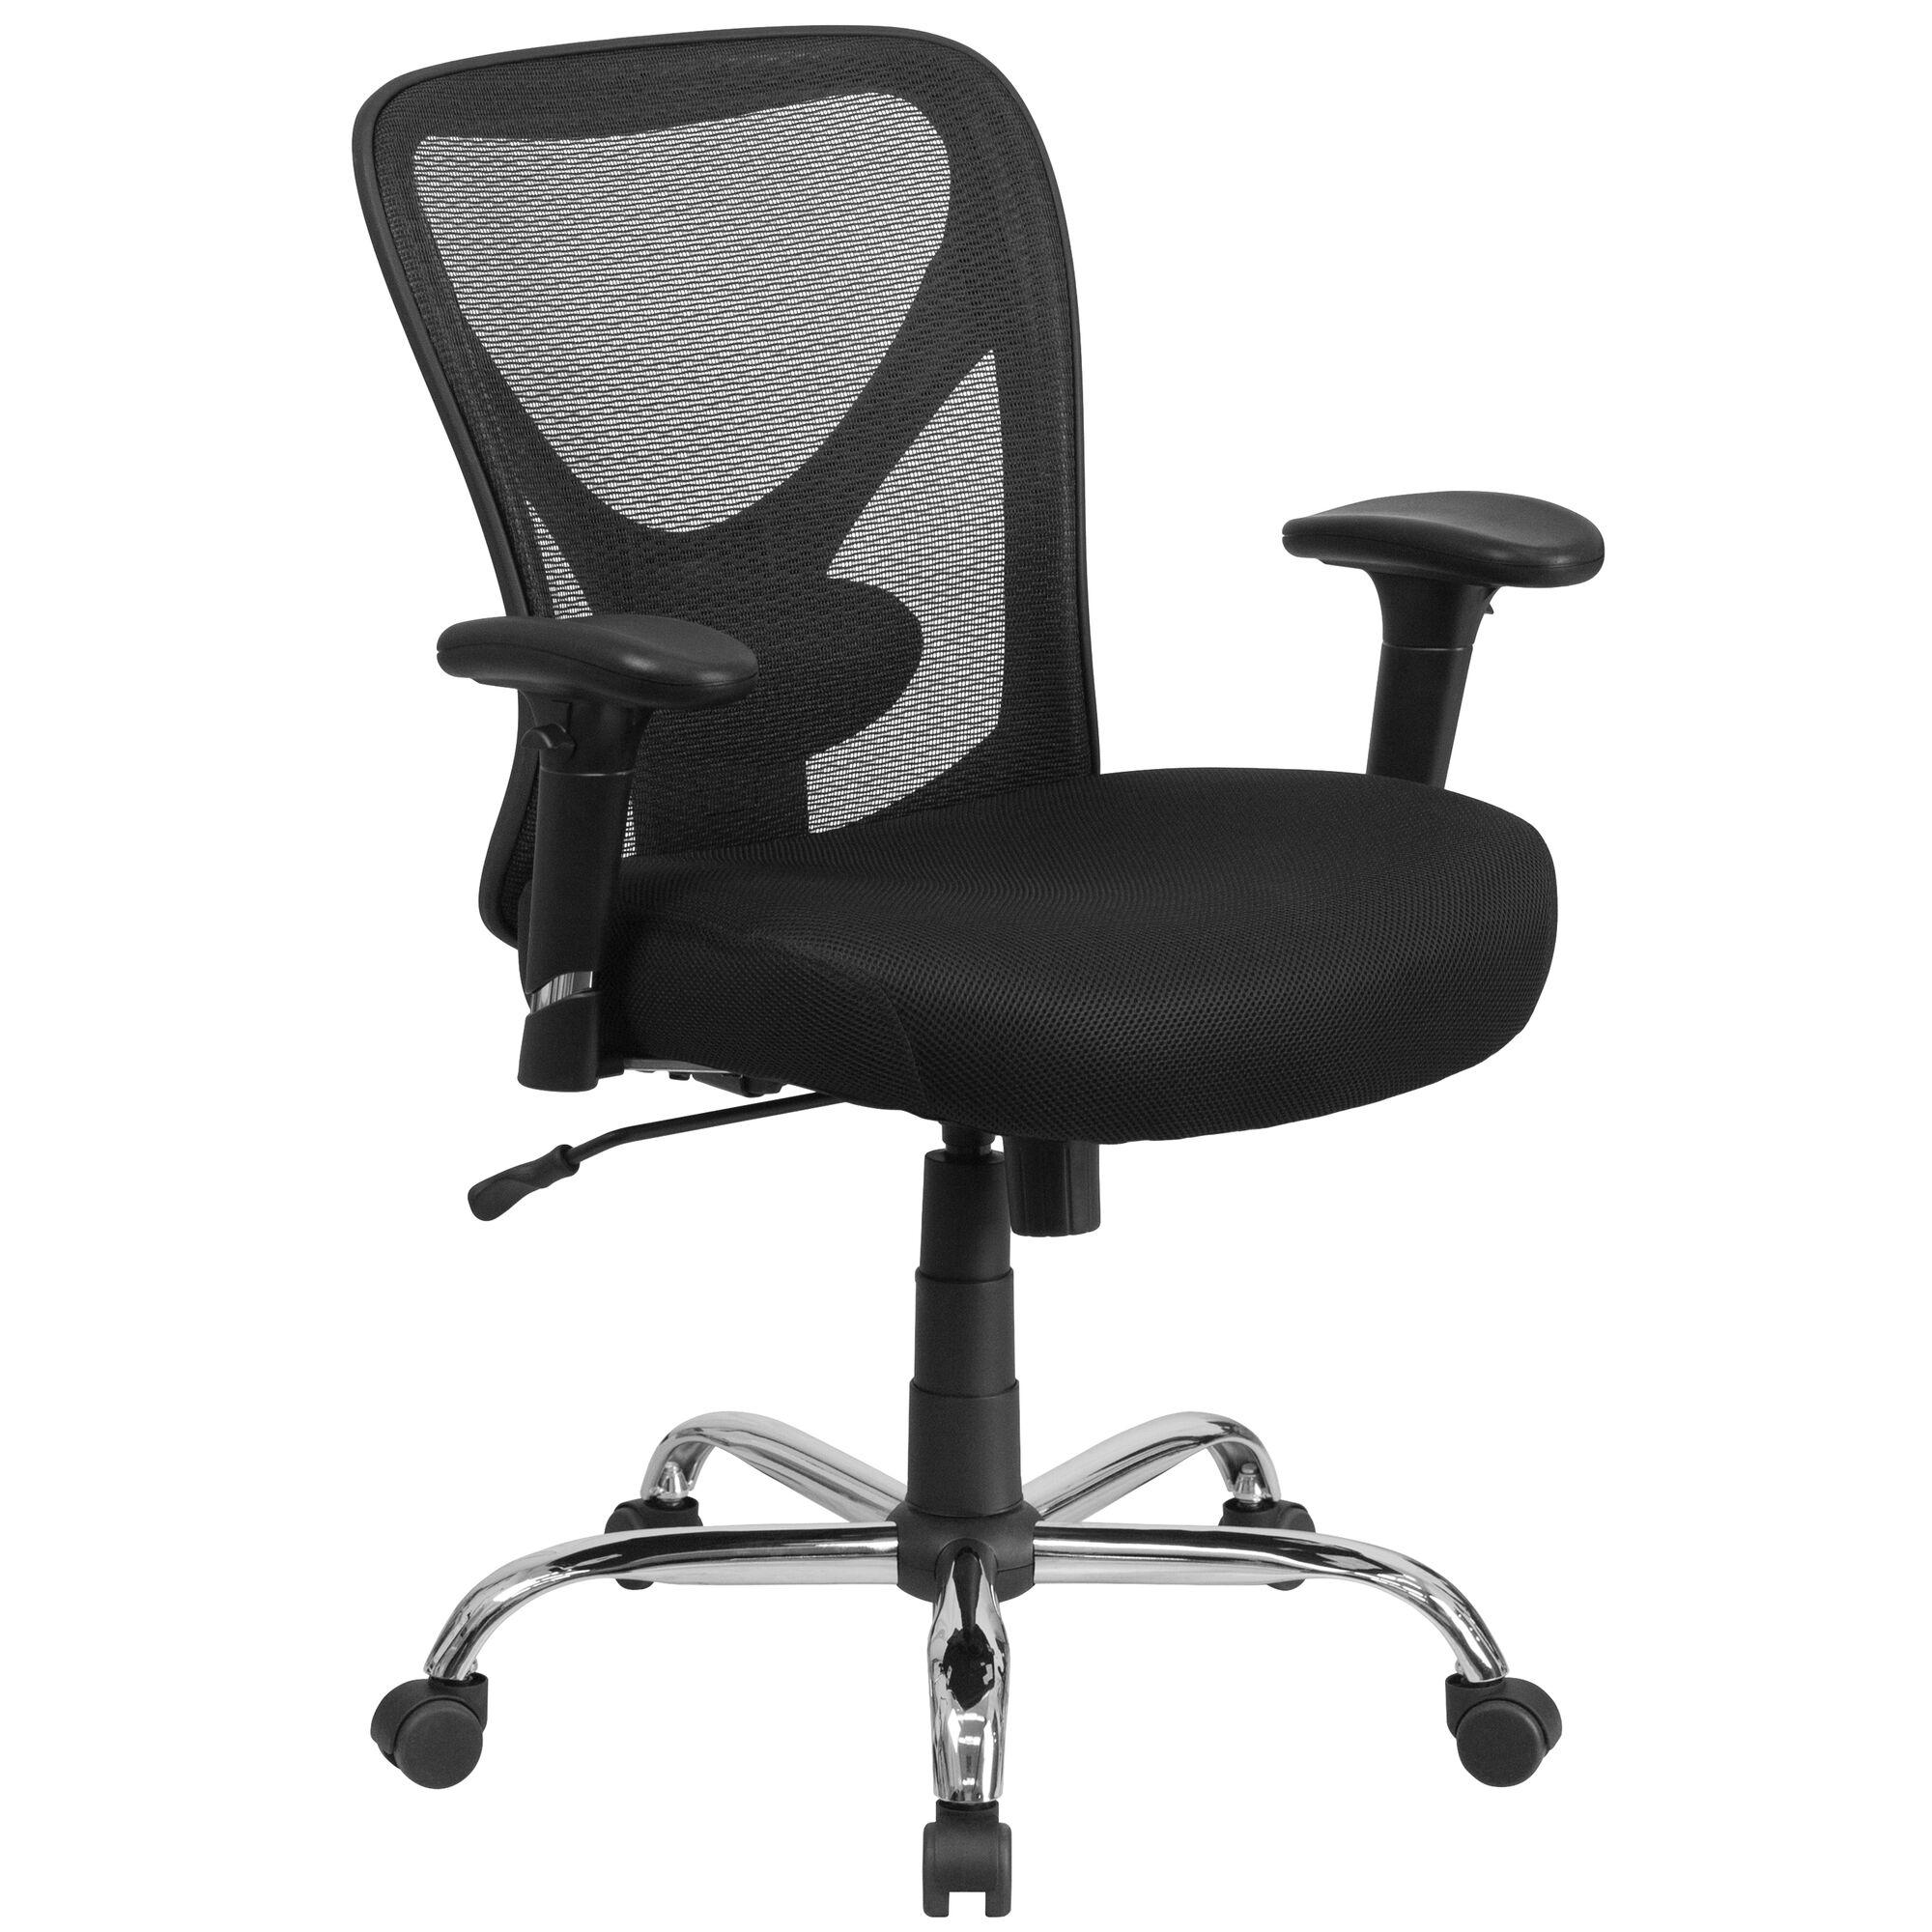 Prime Big Tall Office Chair Adjustable Height Mesh Swivel Office Chair With Wheels Inzonedesignstudio Interior Chair Design Inzonedesignstudiocom